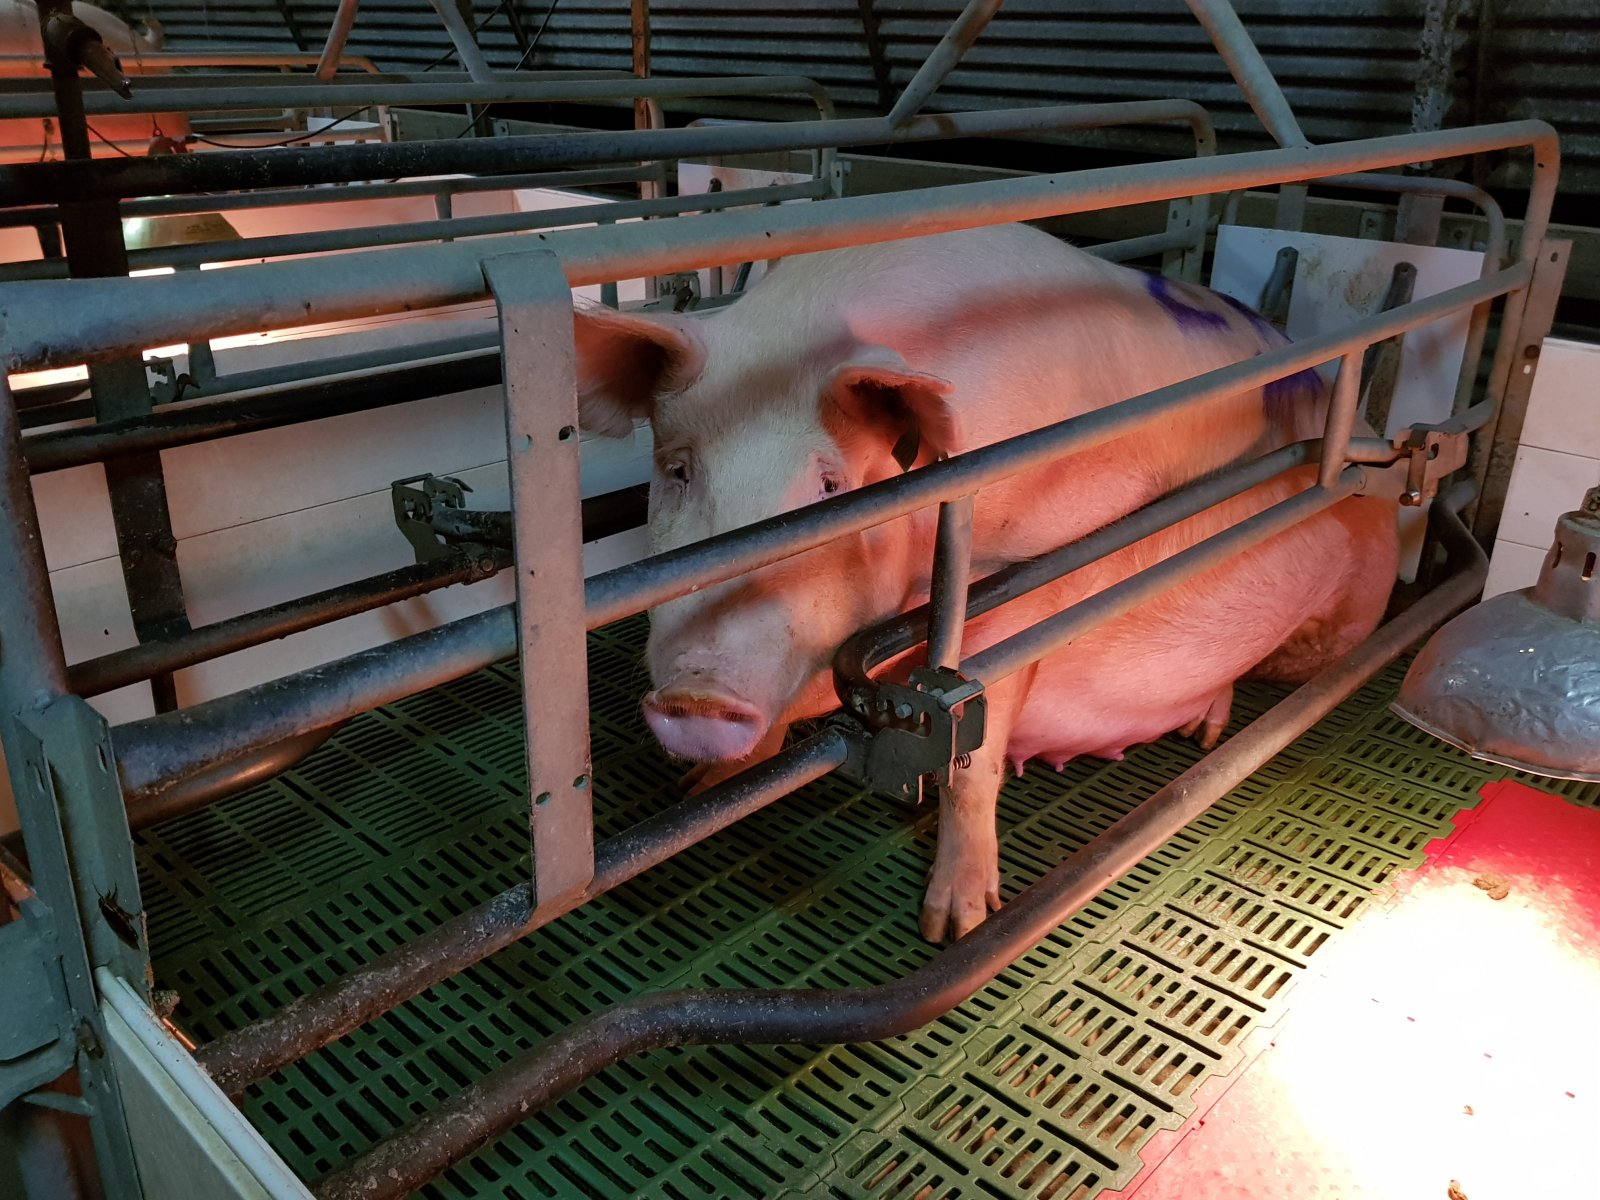 A pig in a farrowing crate